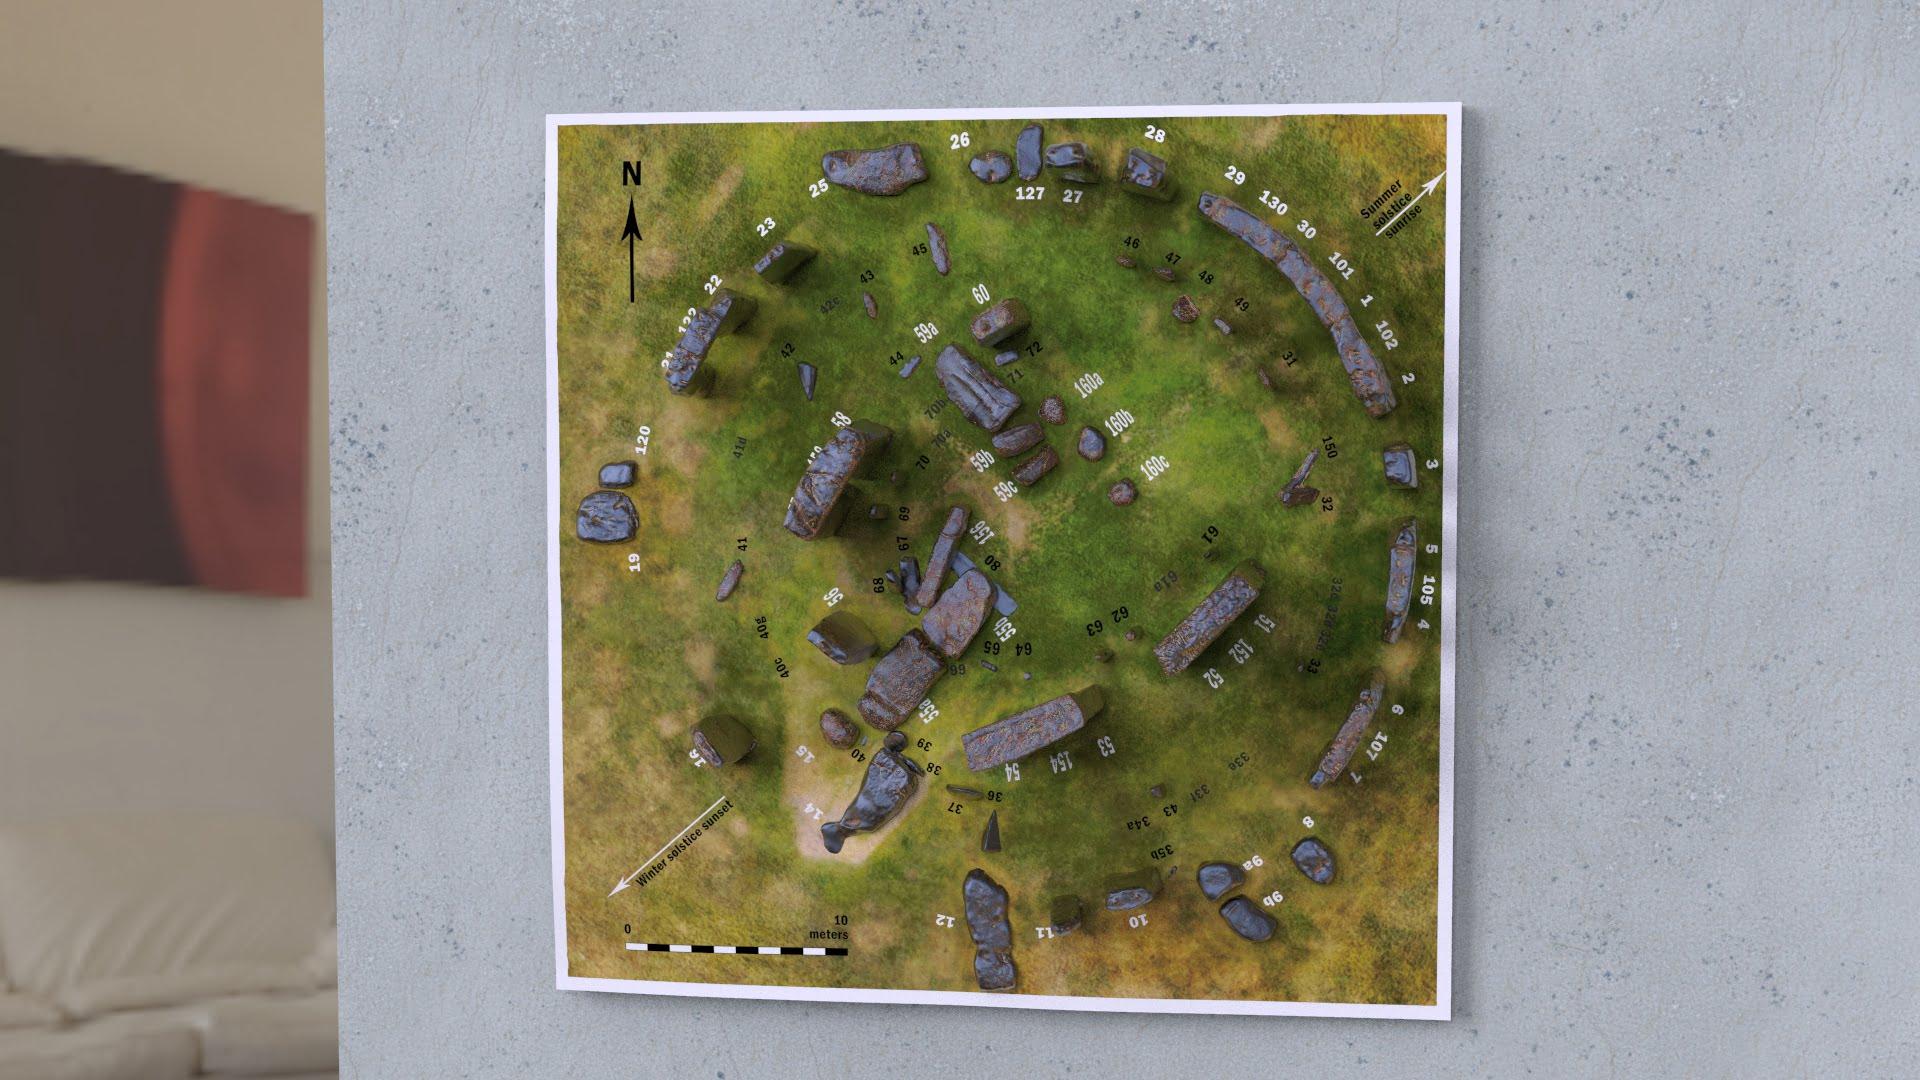 Buy Stonehenge Models: Unframed simply wall mounted Stonehenge replica model 200th scale 195 x 195 mm square rusty iron sarsens and bluestones Camera 1.71  - 200th scale pick n mix -